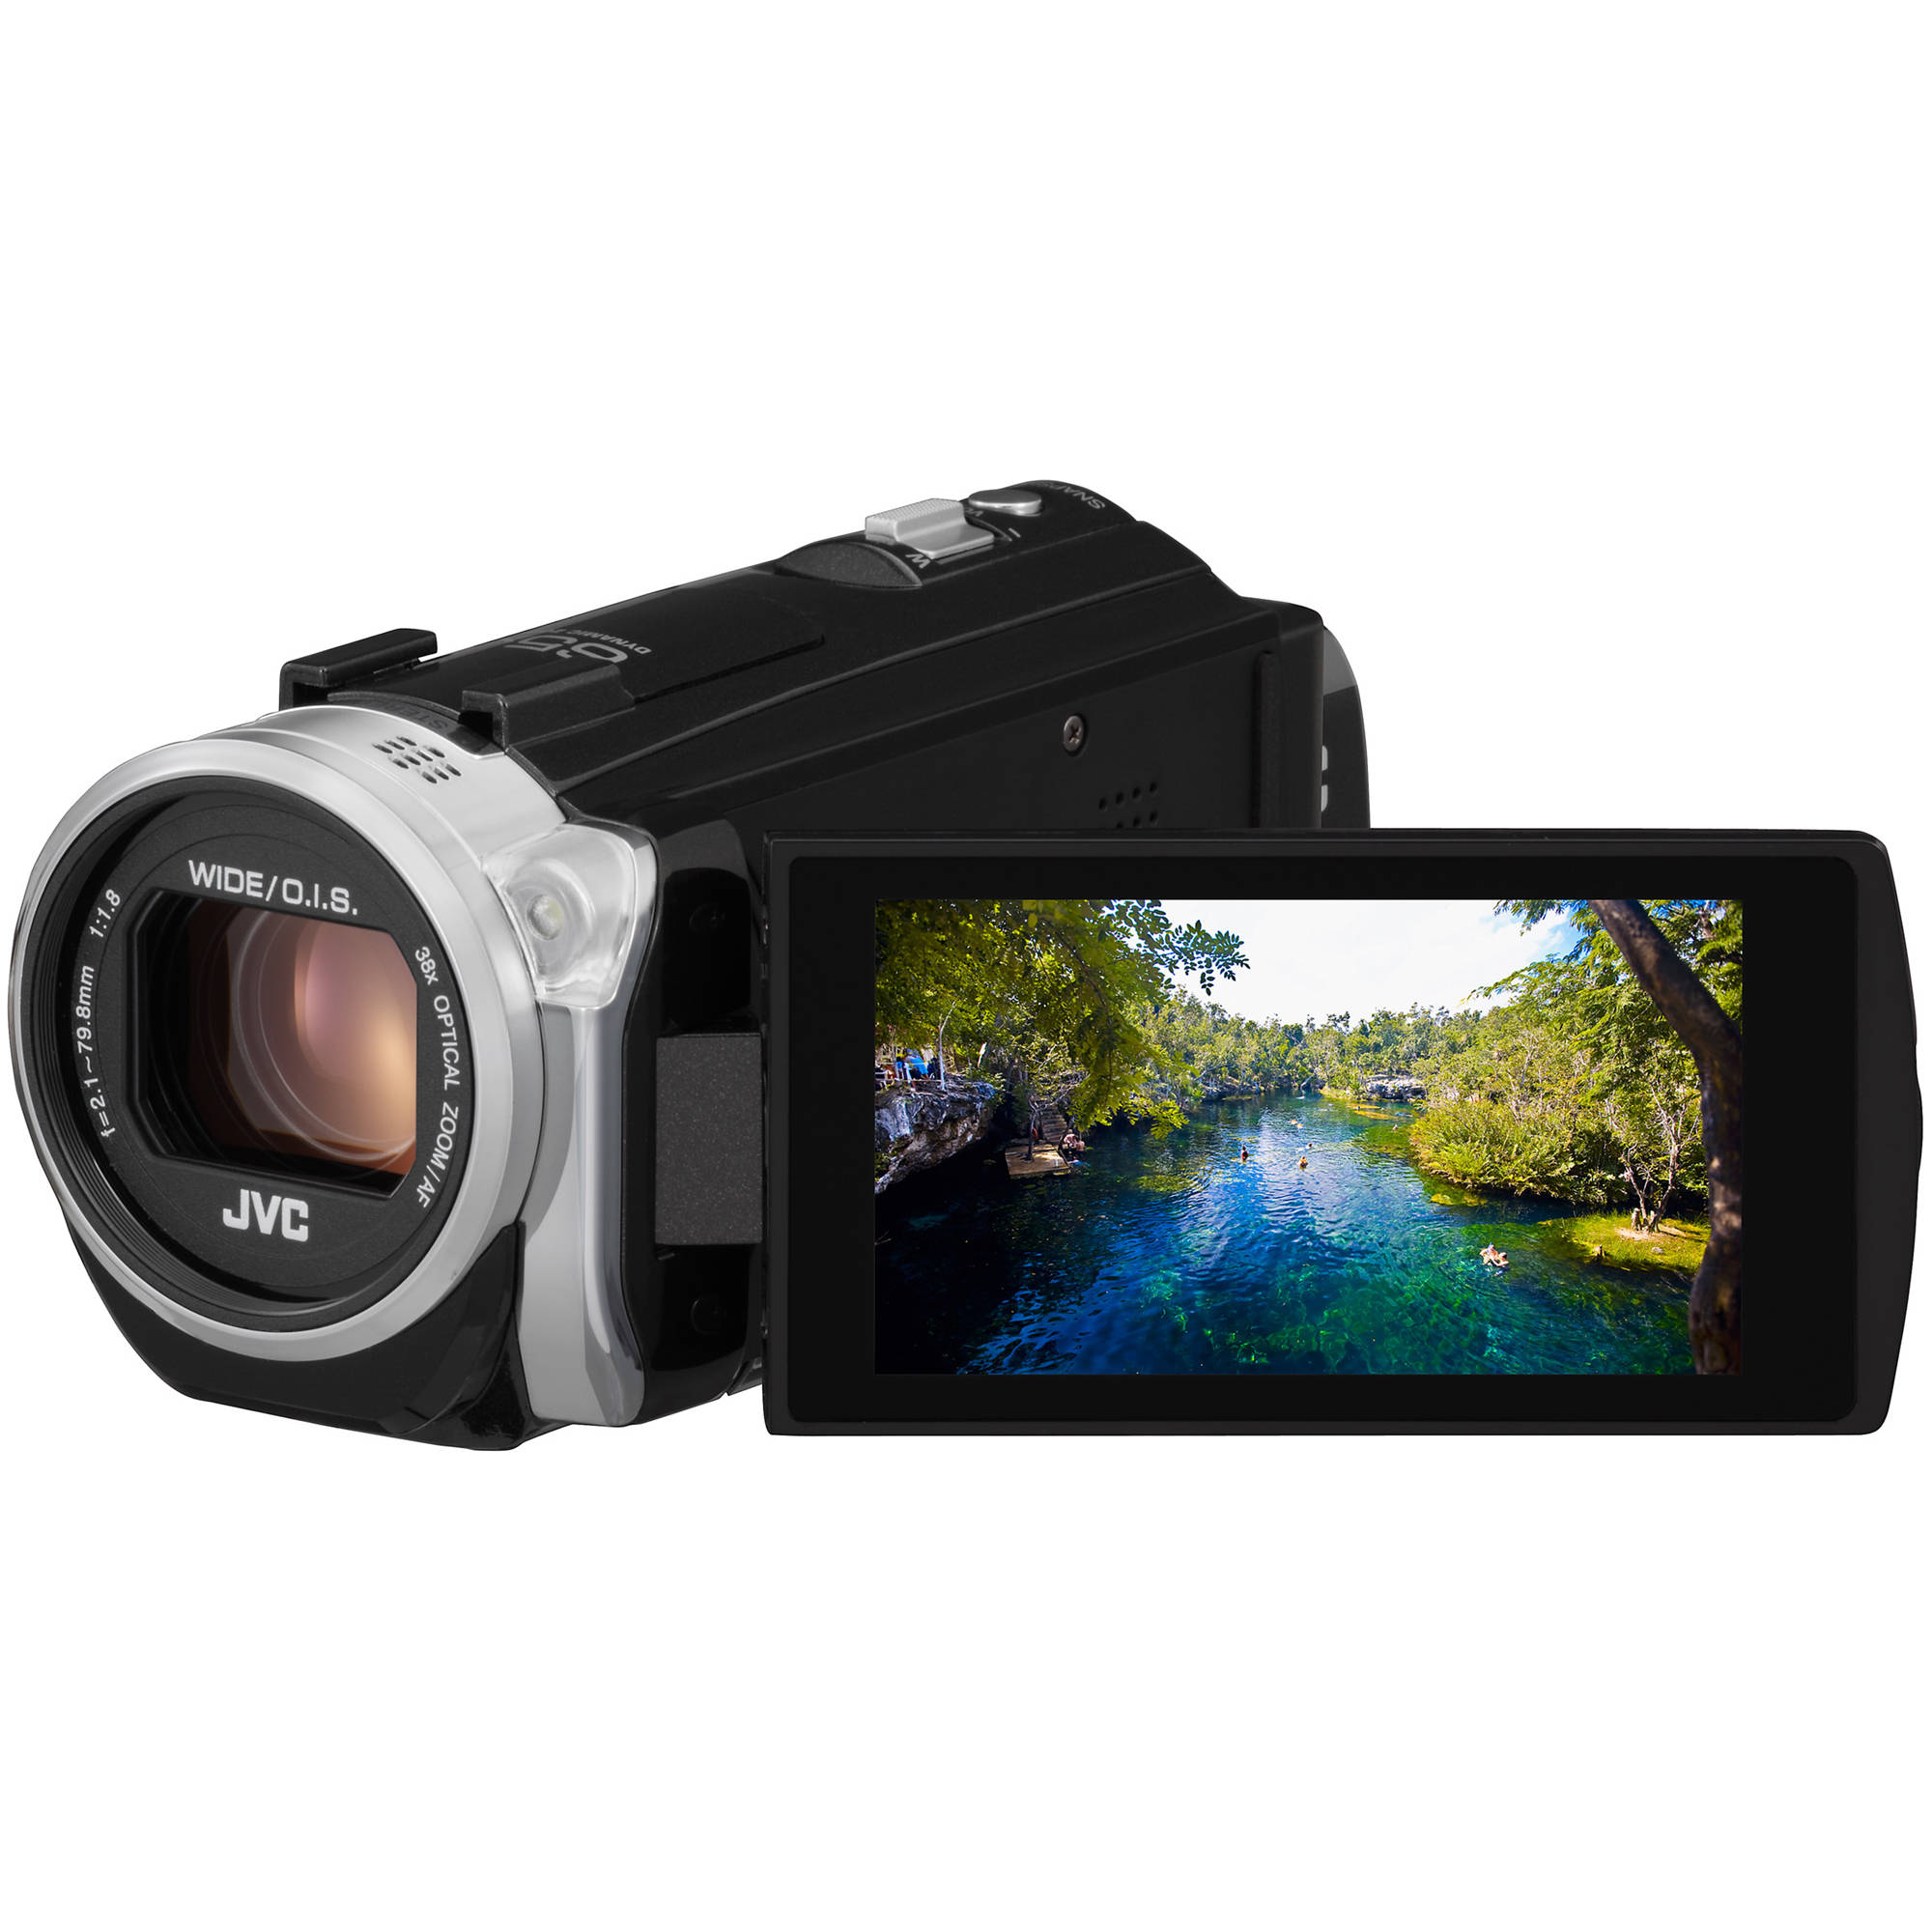 JVC GZ-E505 Full HD Everio Camcorder